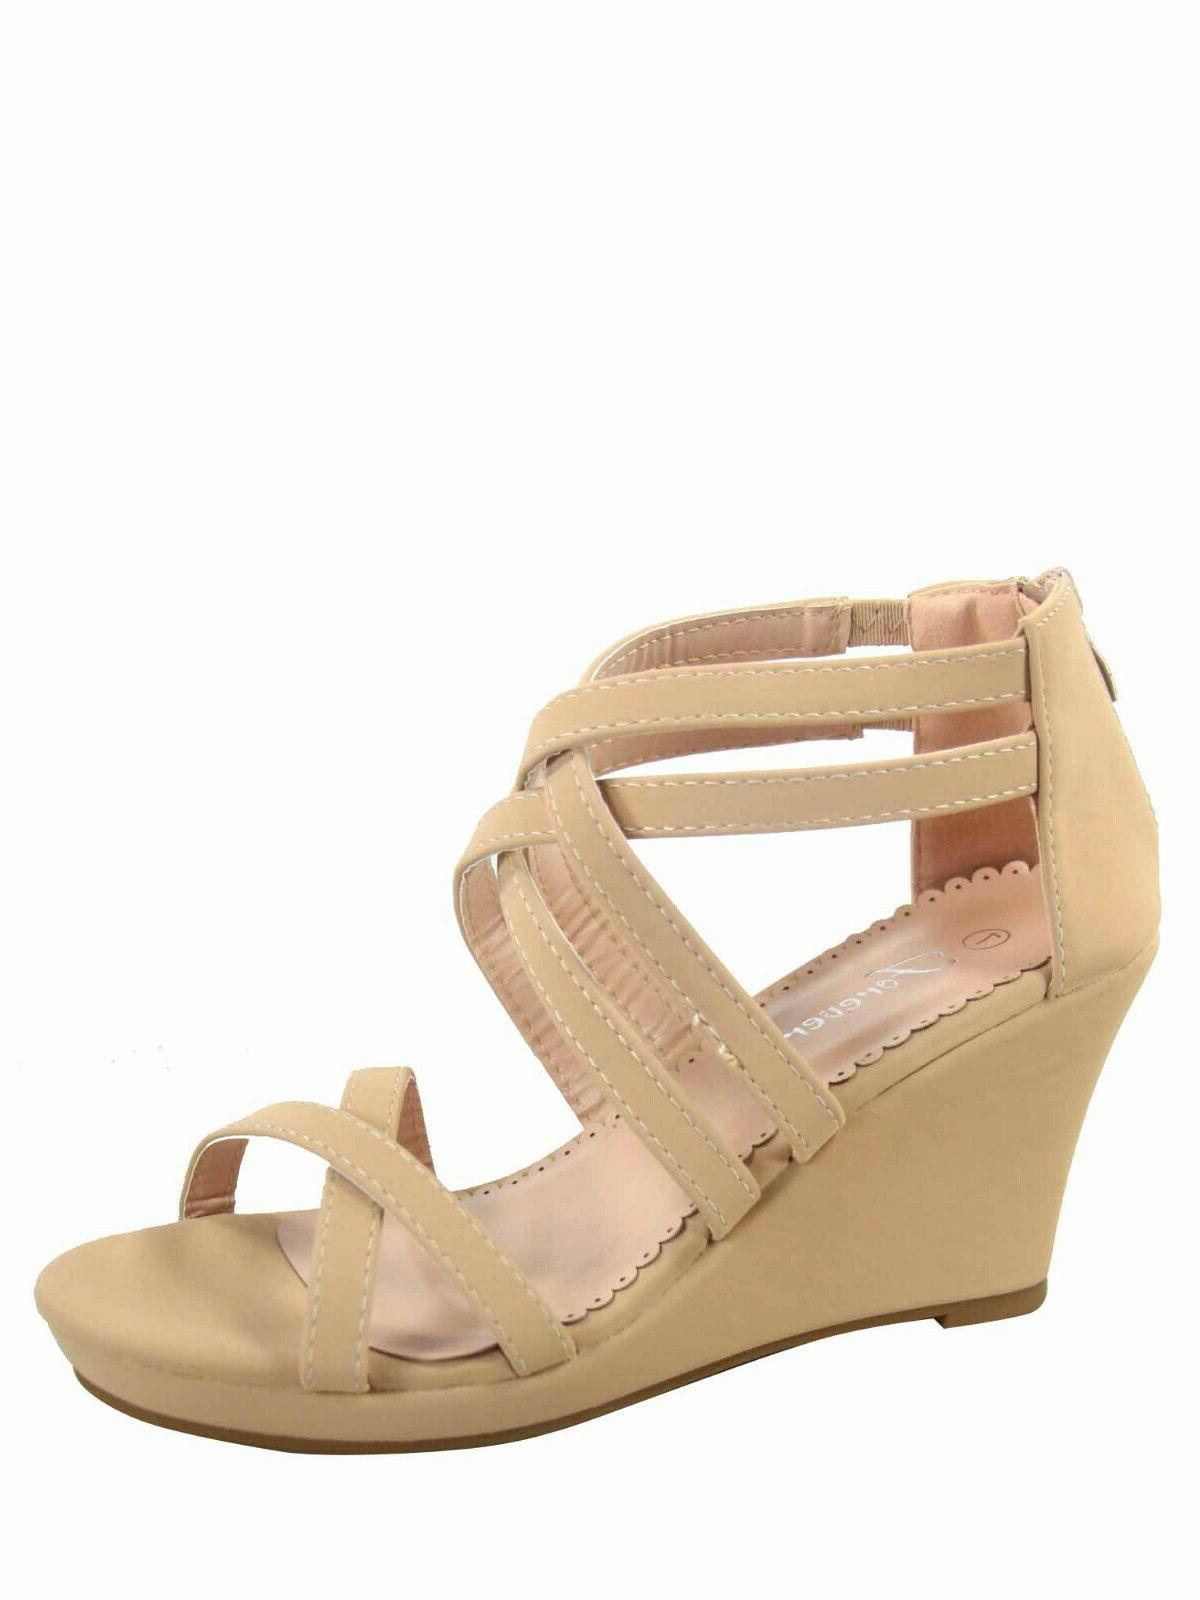 Women's Zipper Ankly Strap Buckles Sandal Shoes Size 5 10 NEW